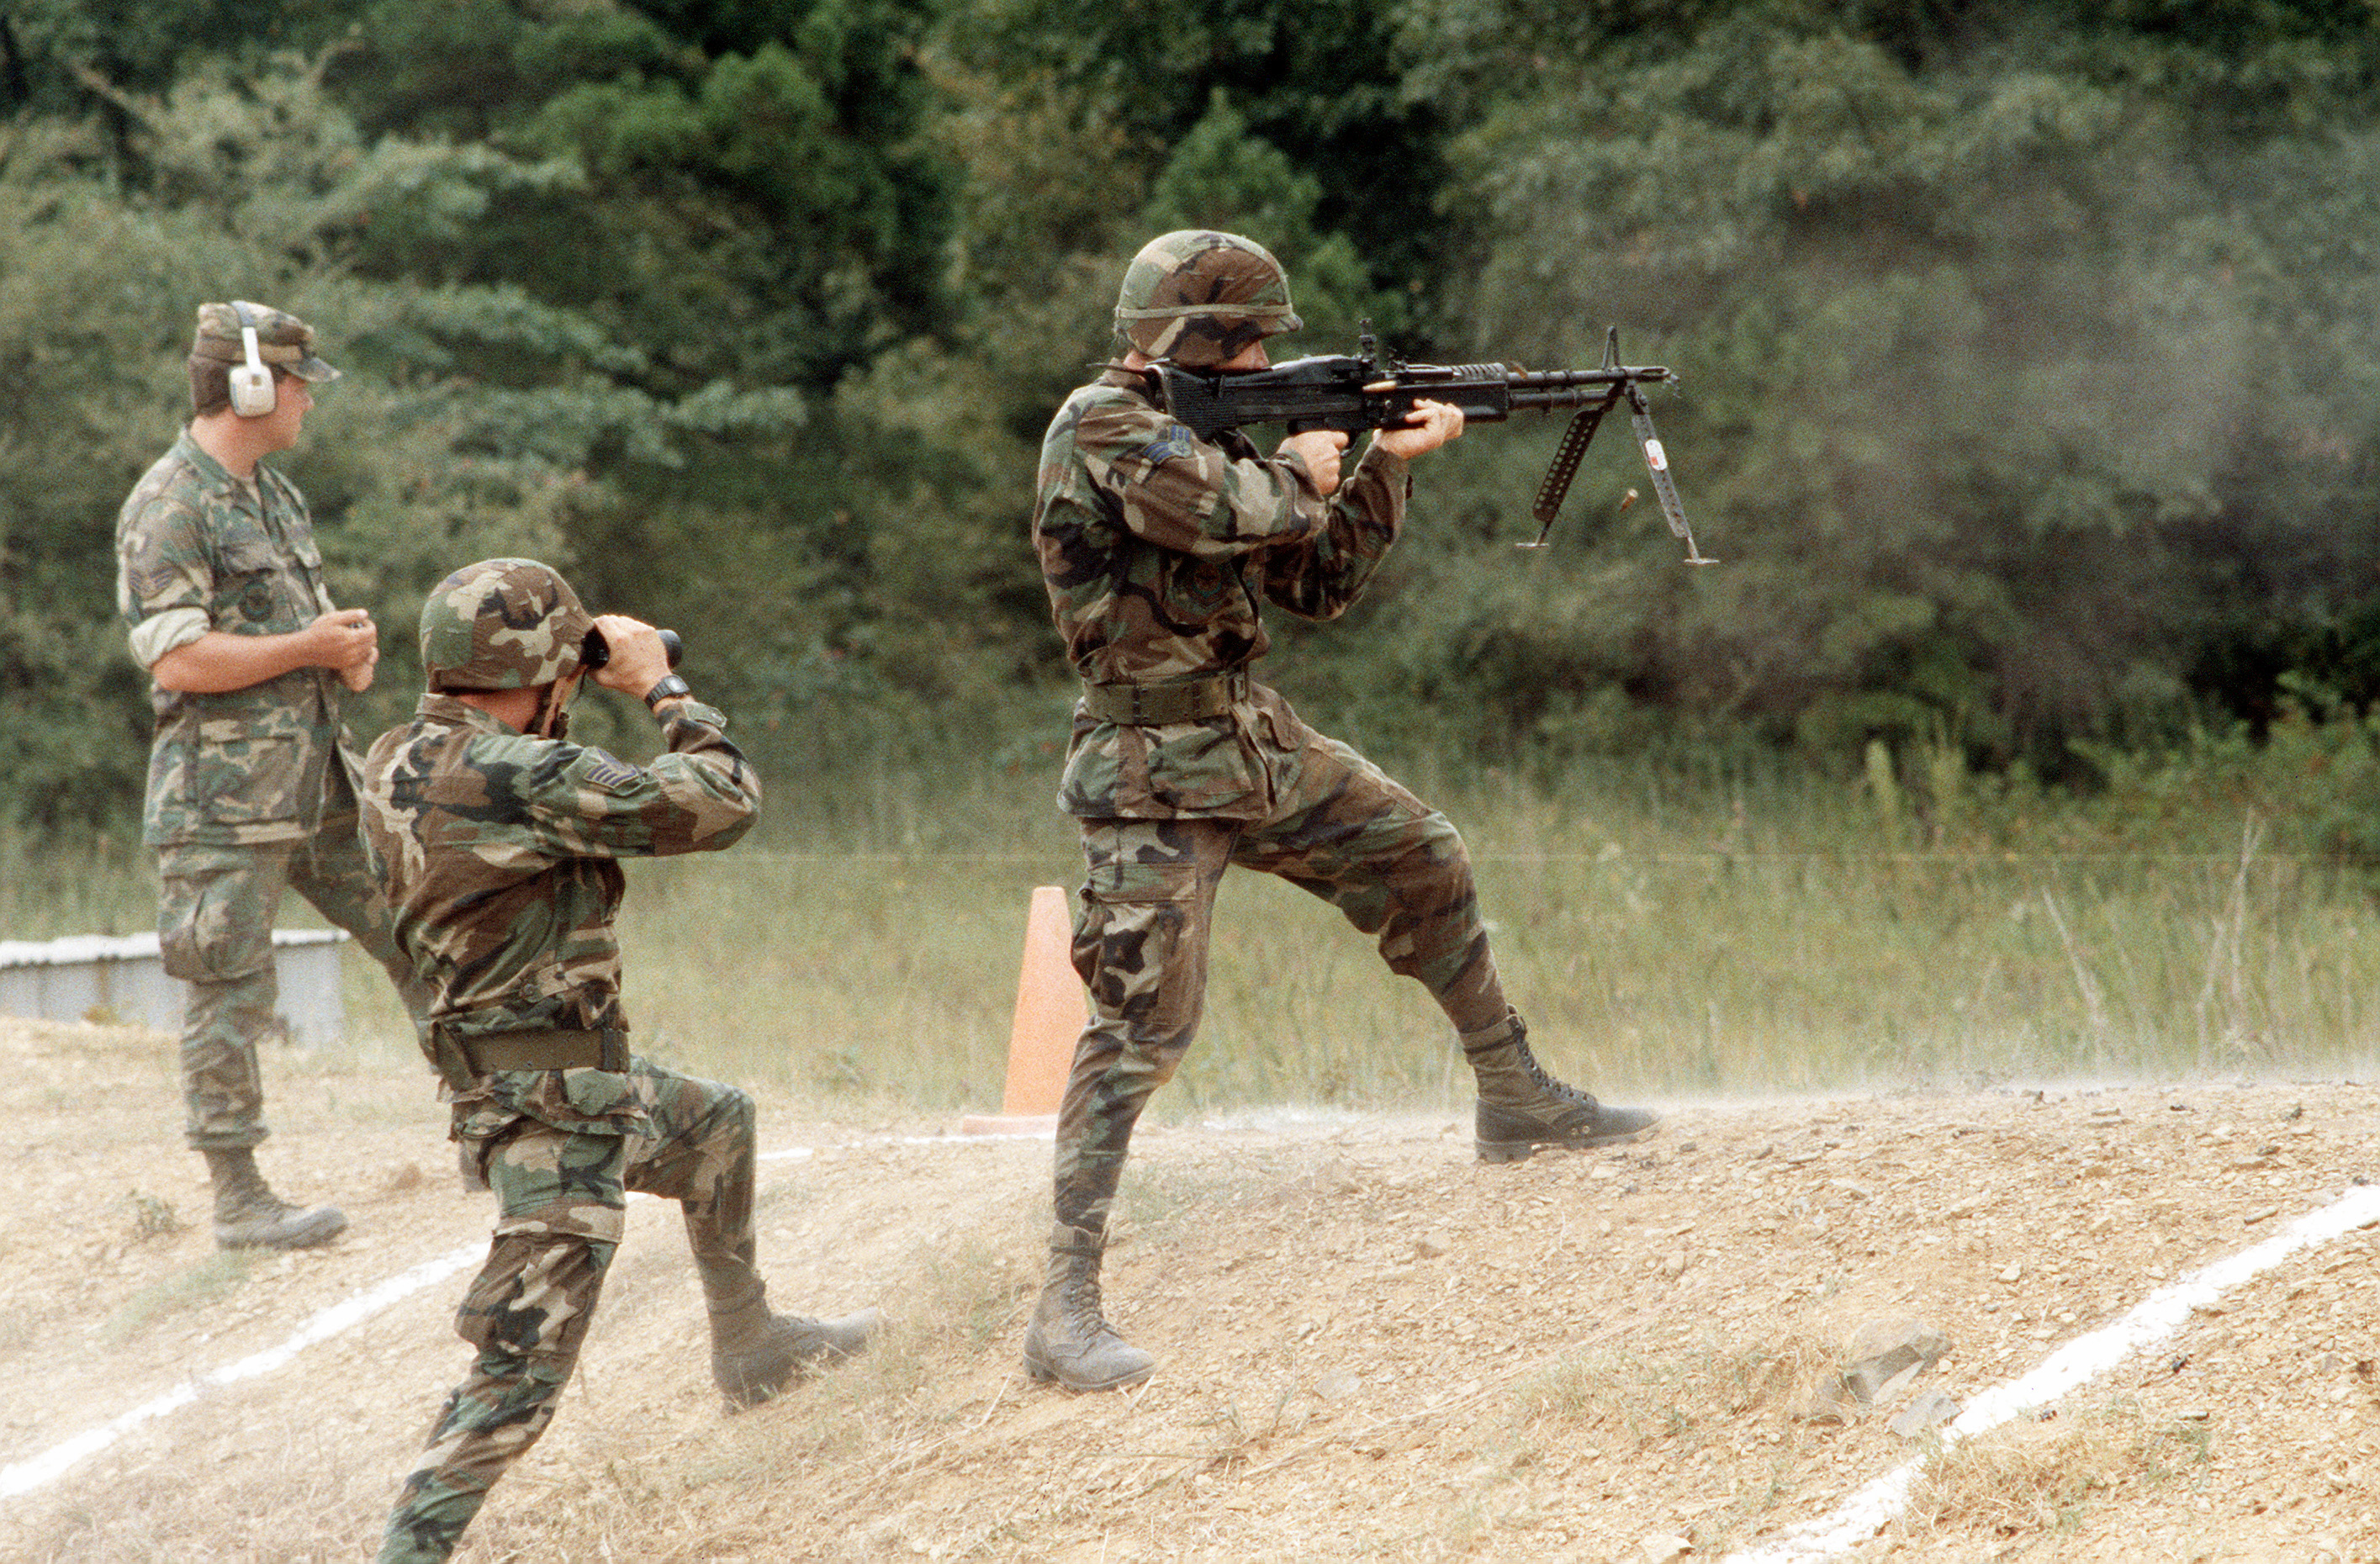 M240 being used like an ASSAULT RIFLE